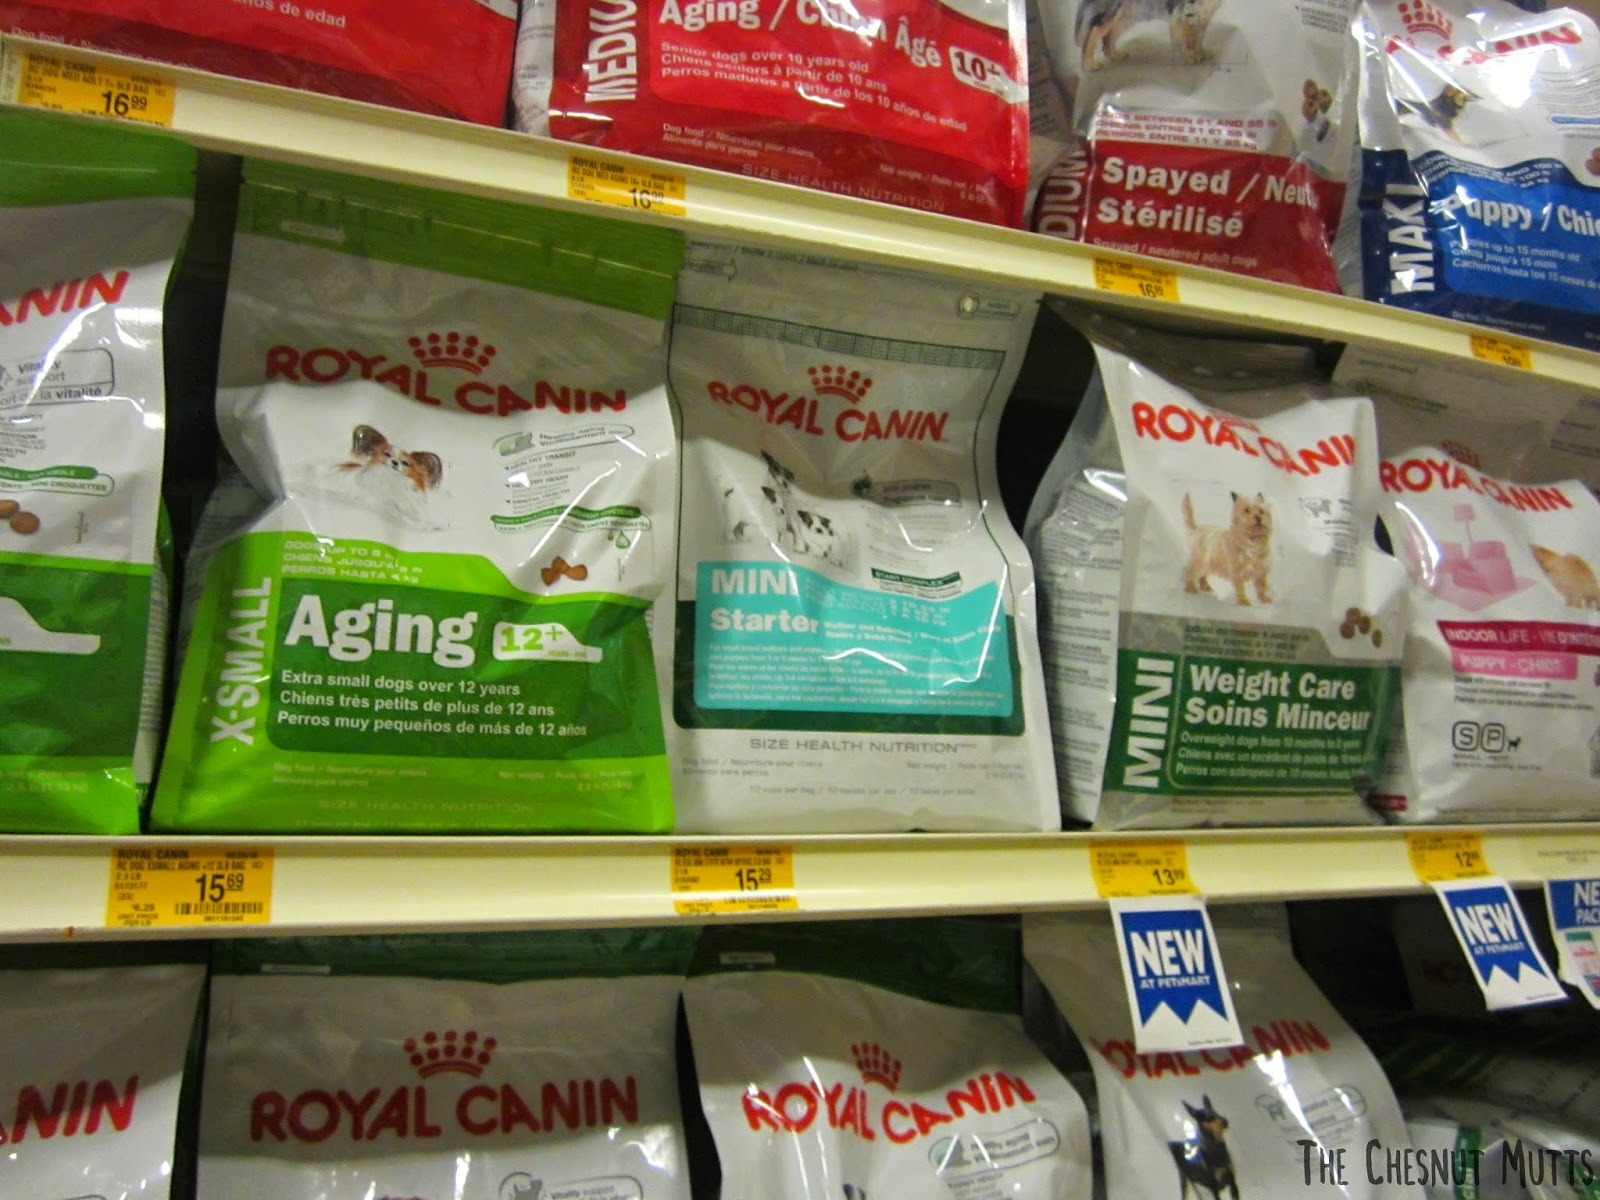 Royal Canin Dog Food for Dog Health